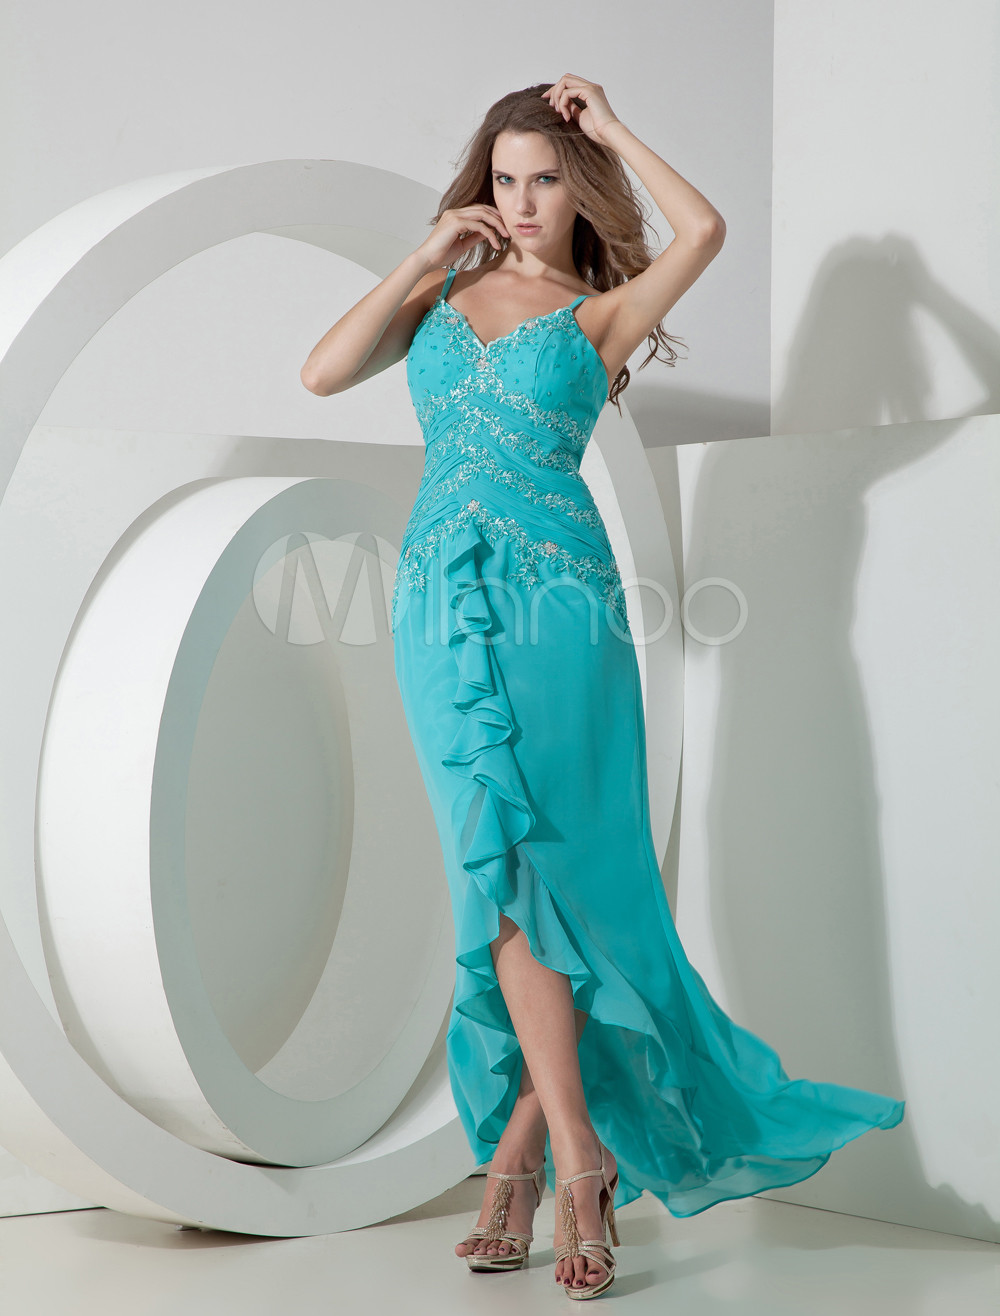 Chiffon Prom Dress Turquoise Sheath V Neck Beading Ruffle Maxi Party Dress